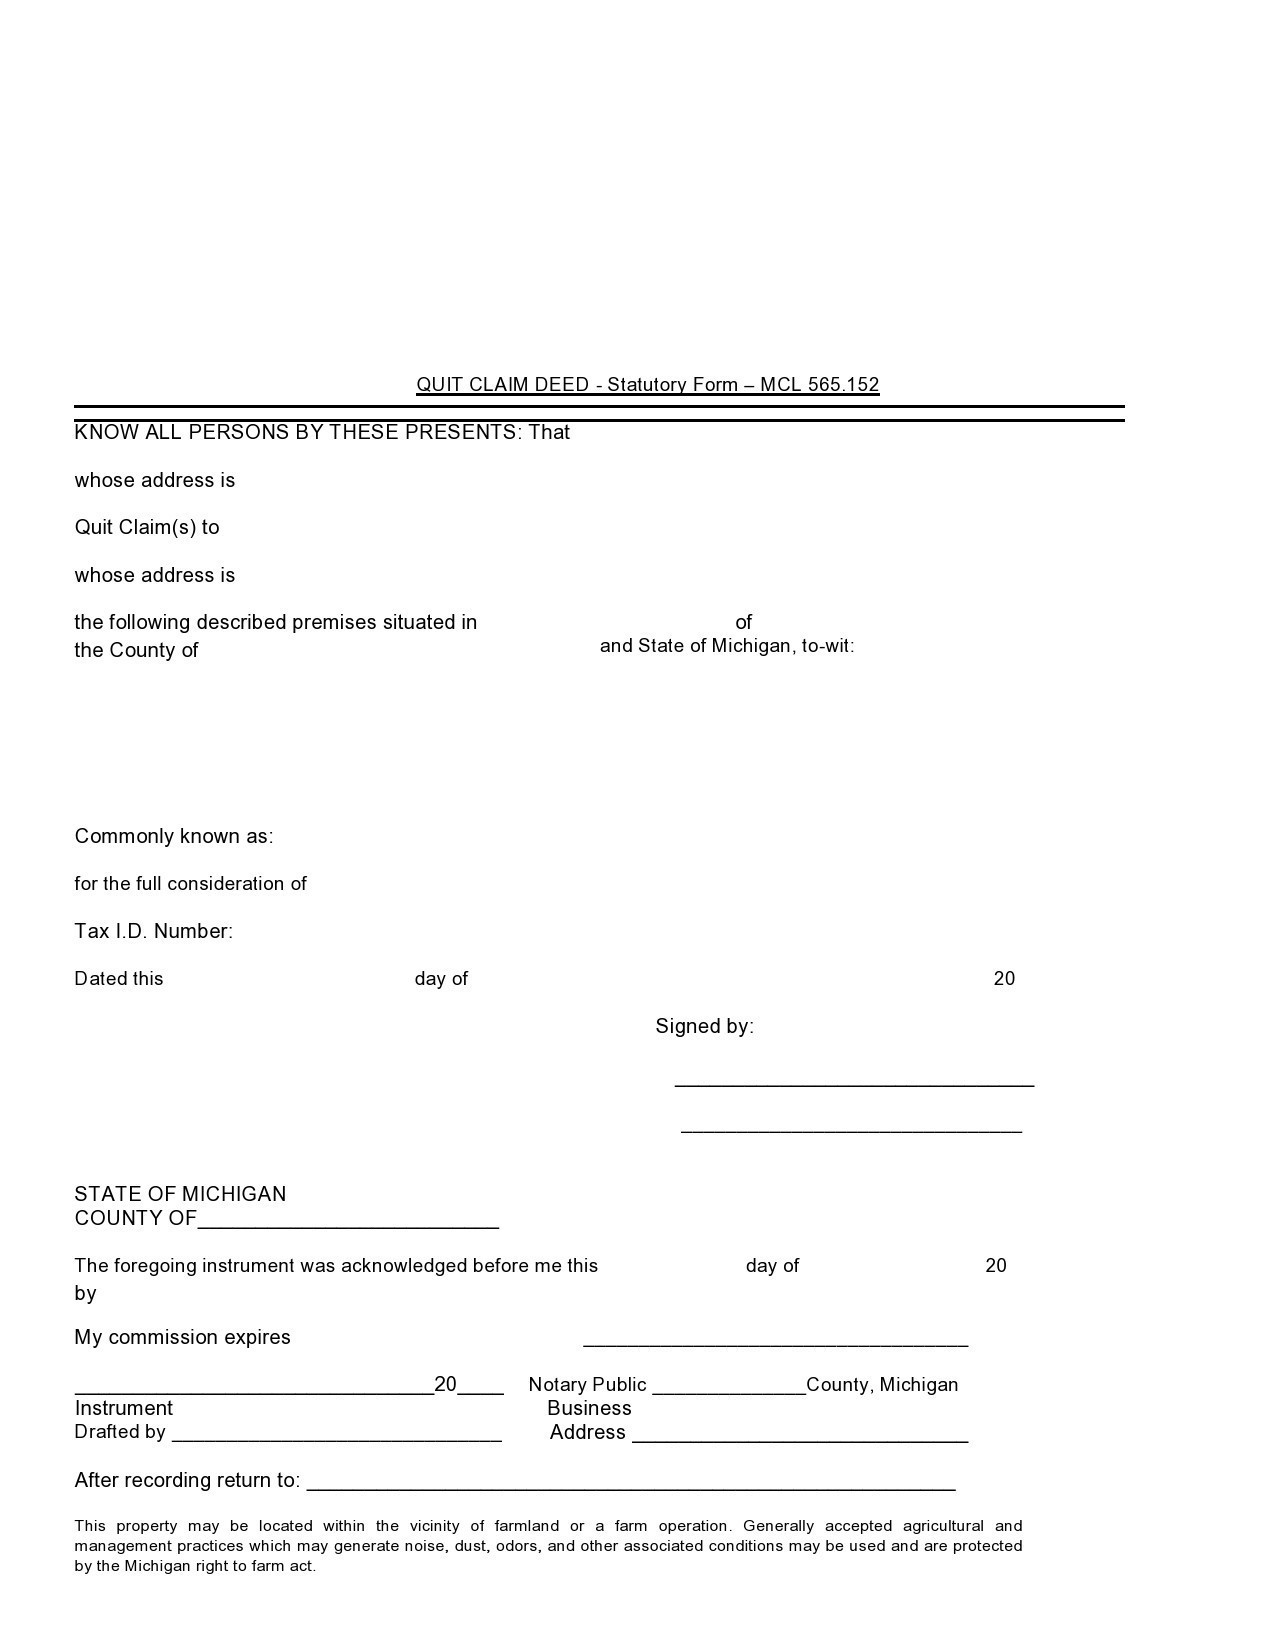 Free quit claim deed form 36